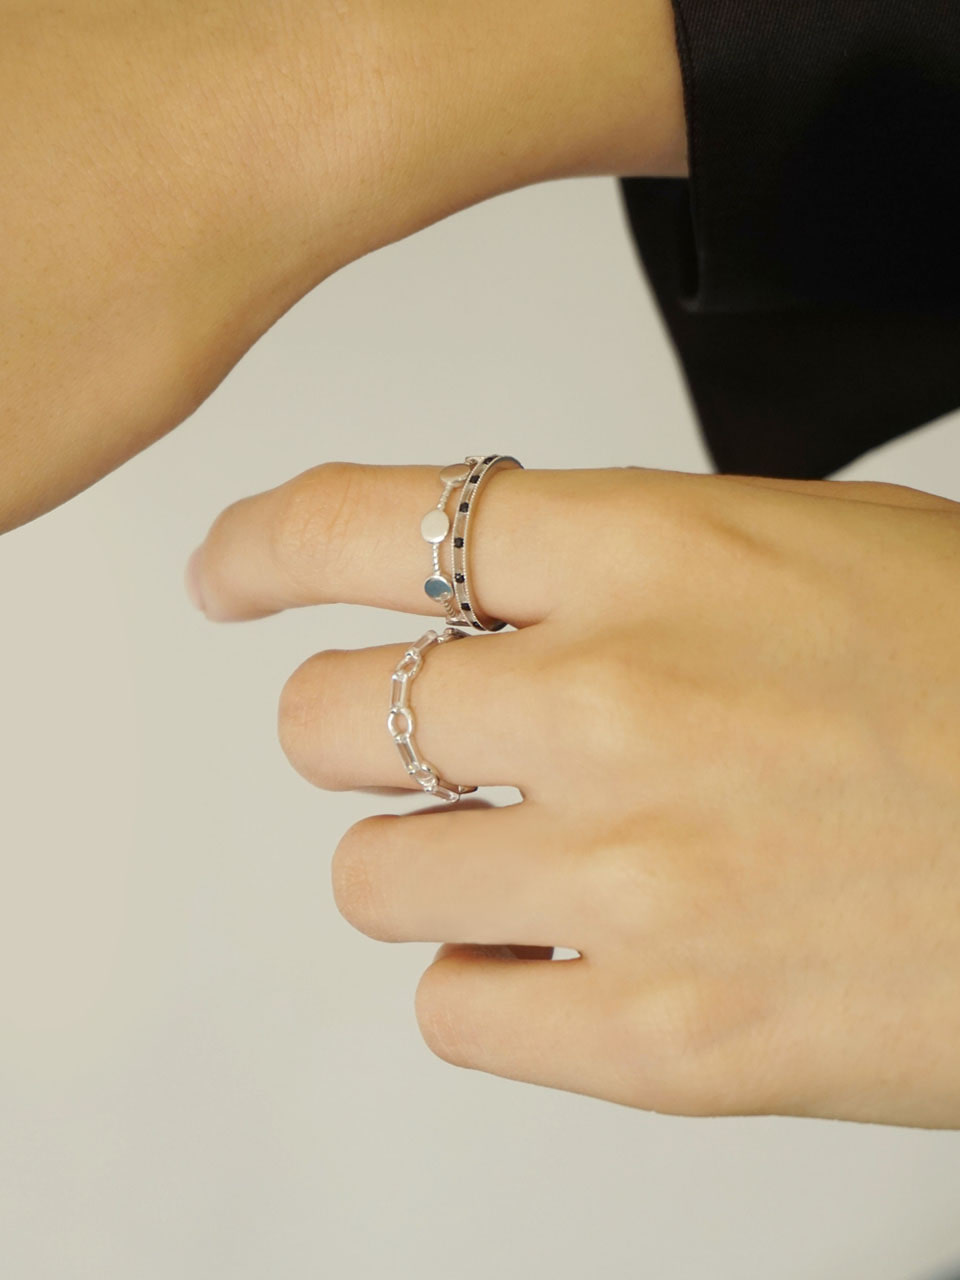 Between cubic set ring